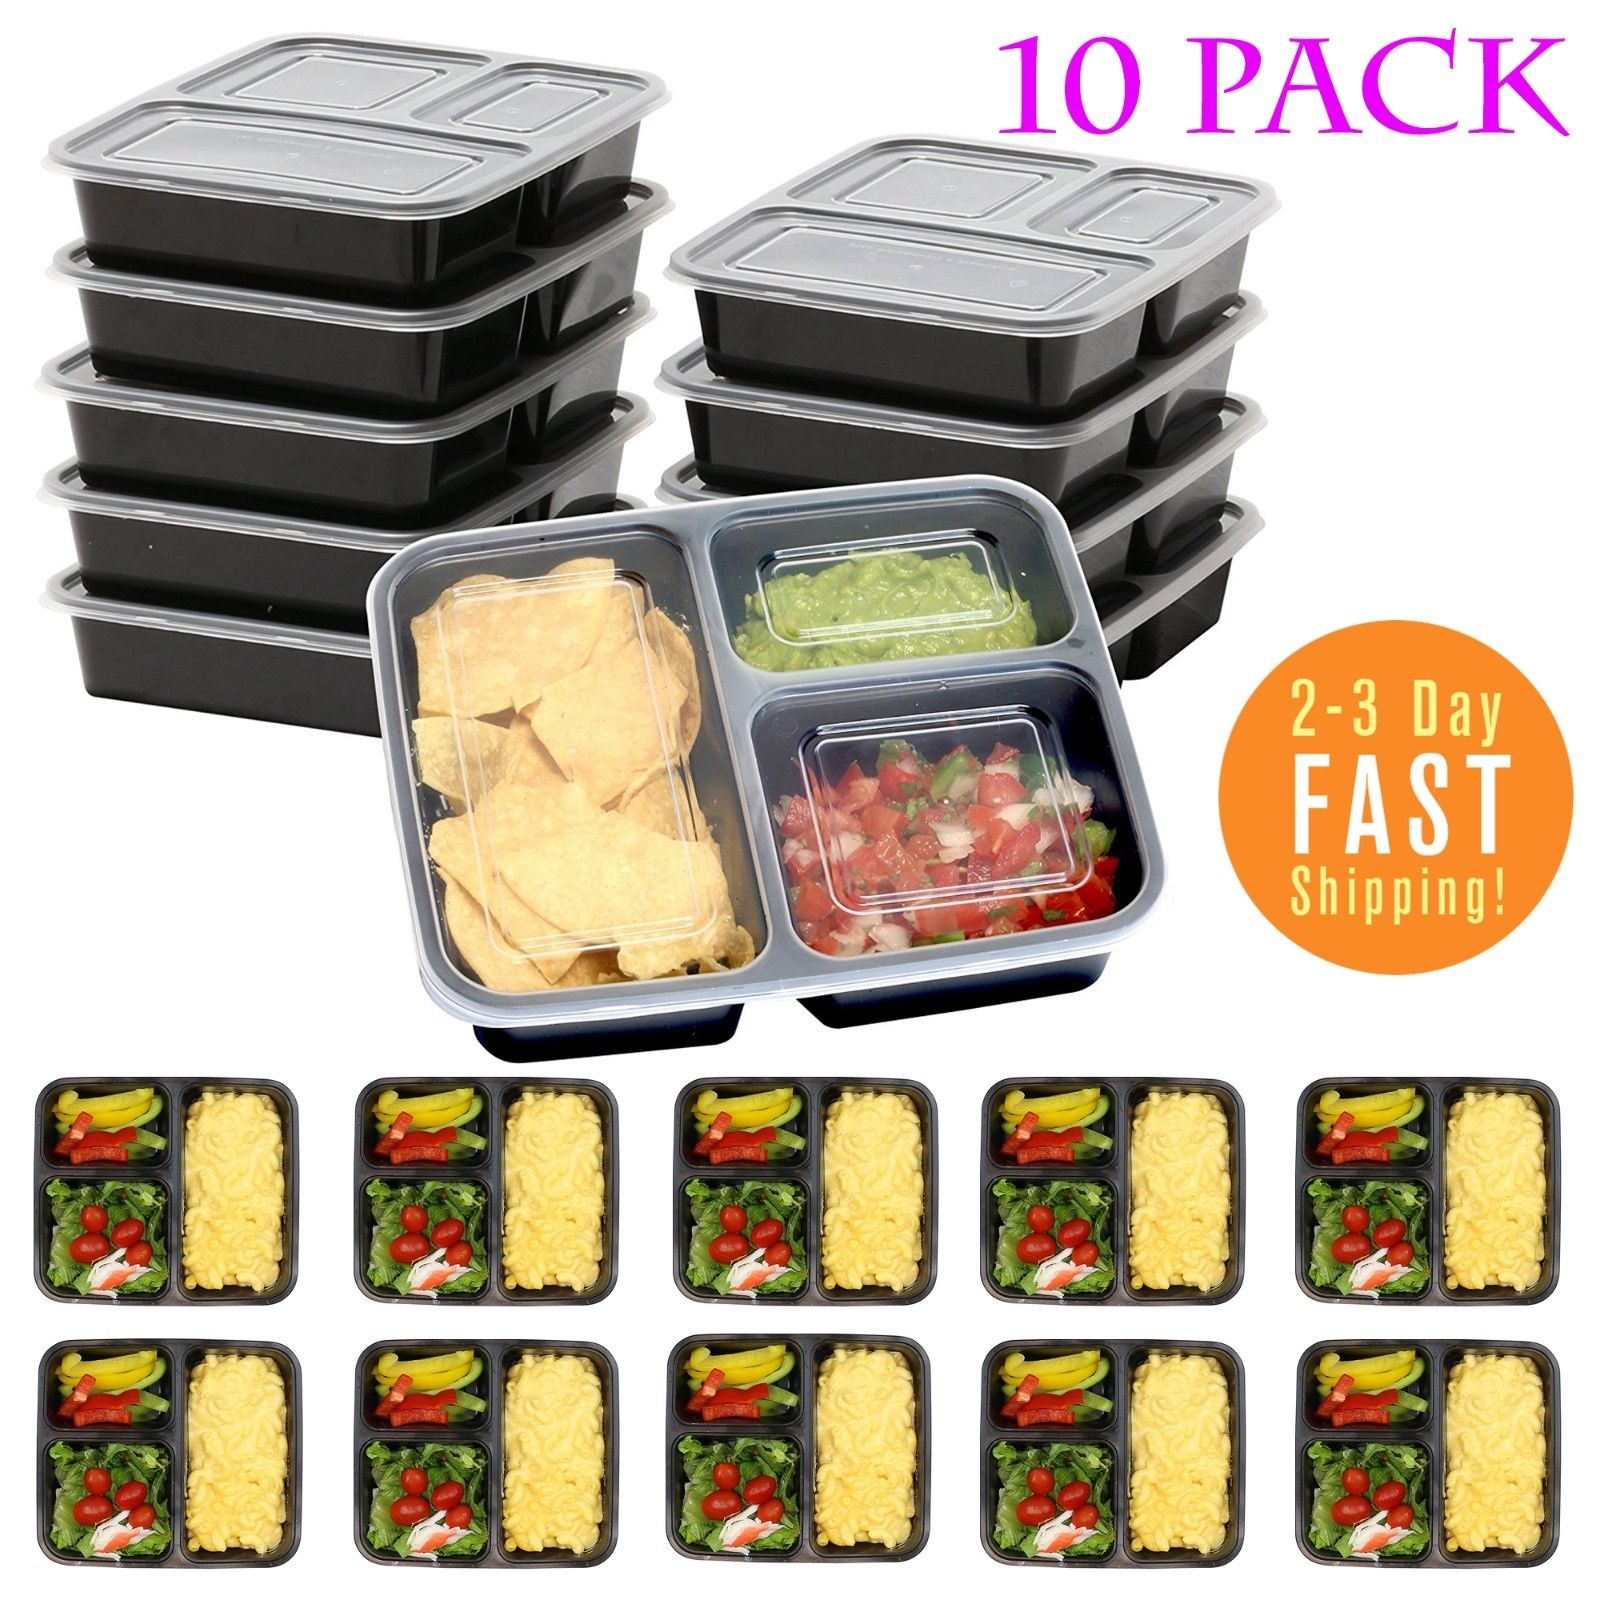 Meal Prep Containers Food Storage Reusable Microwavable Diet Boxes 3 Compartment 1